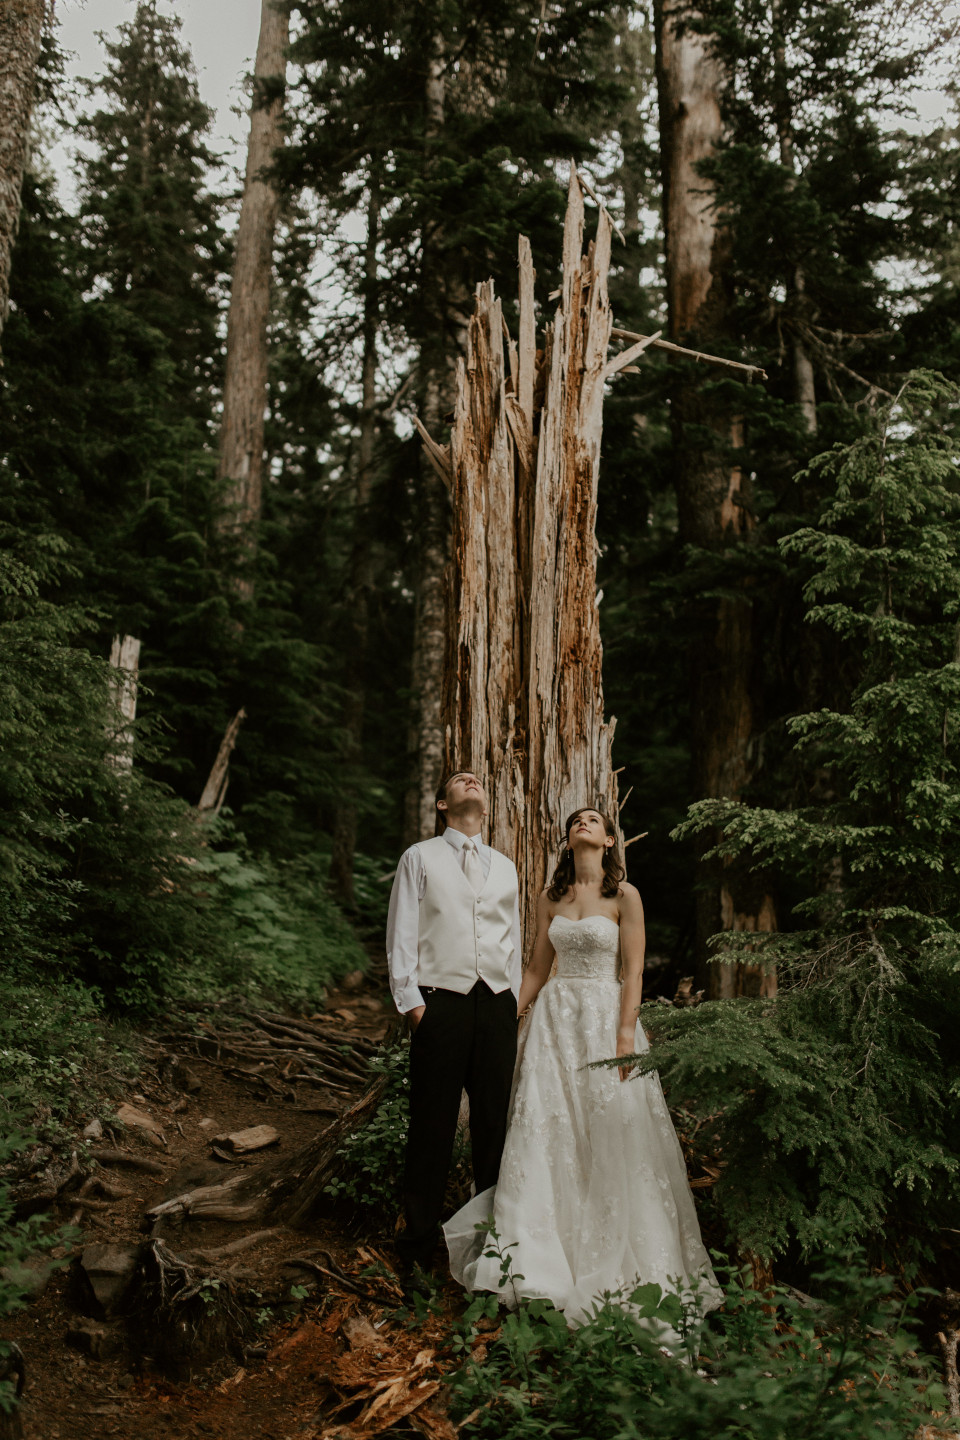 Moira and Ryan stand in front of a downed tree, looking up. Adventure elopement wedding shoot by Sienna Plus Josh.